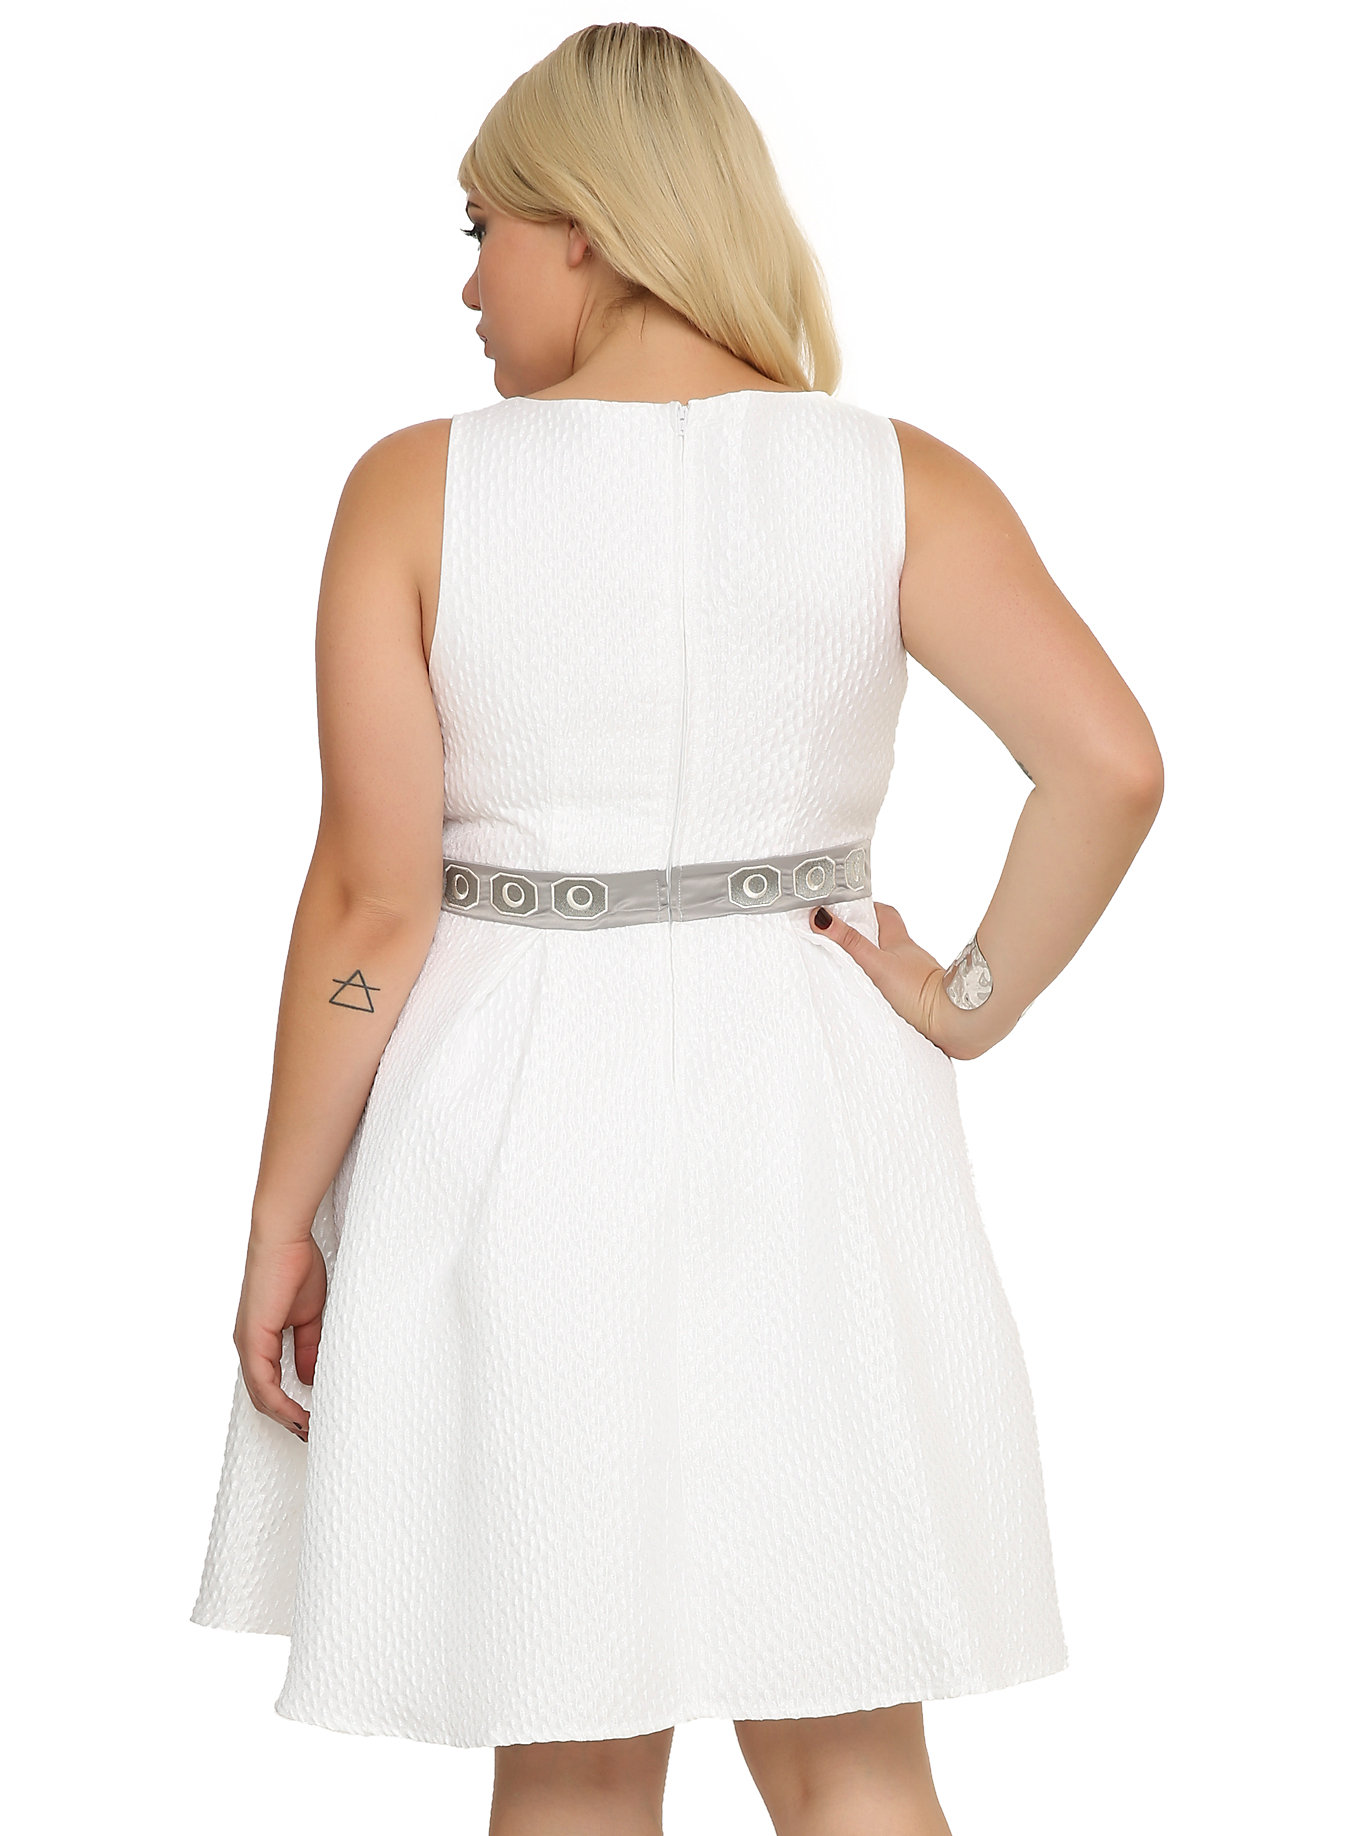 18477d6cb6 ... Hot Topic - women's plus size Princess Leia dress by Her Universe  (back) ...